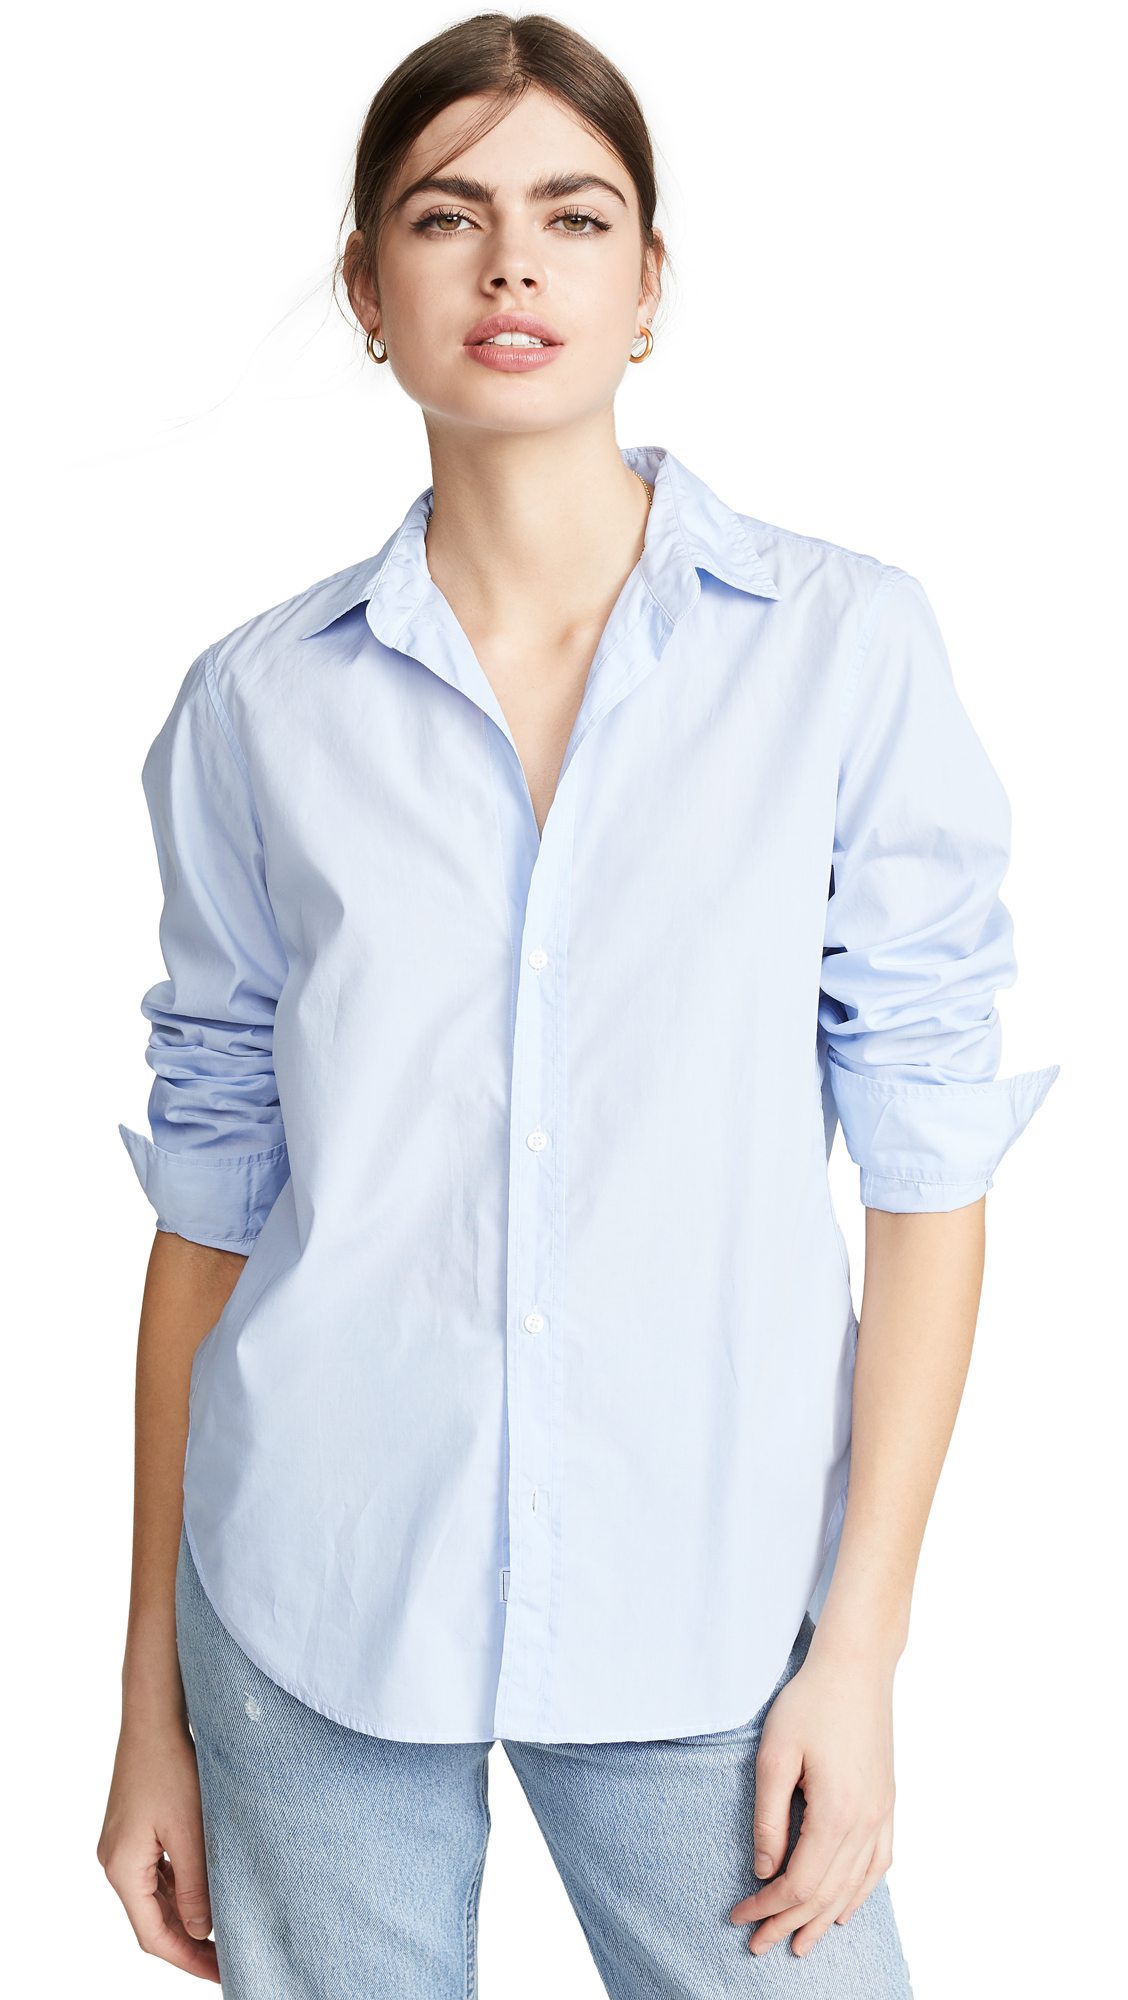 Frank & Eileen Frank Button Down - Soft Blue